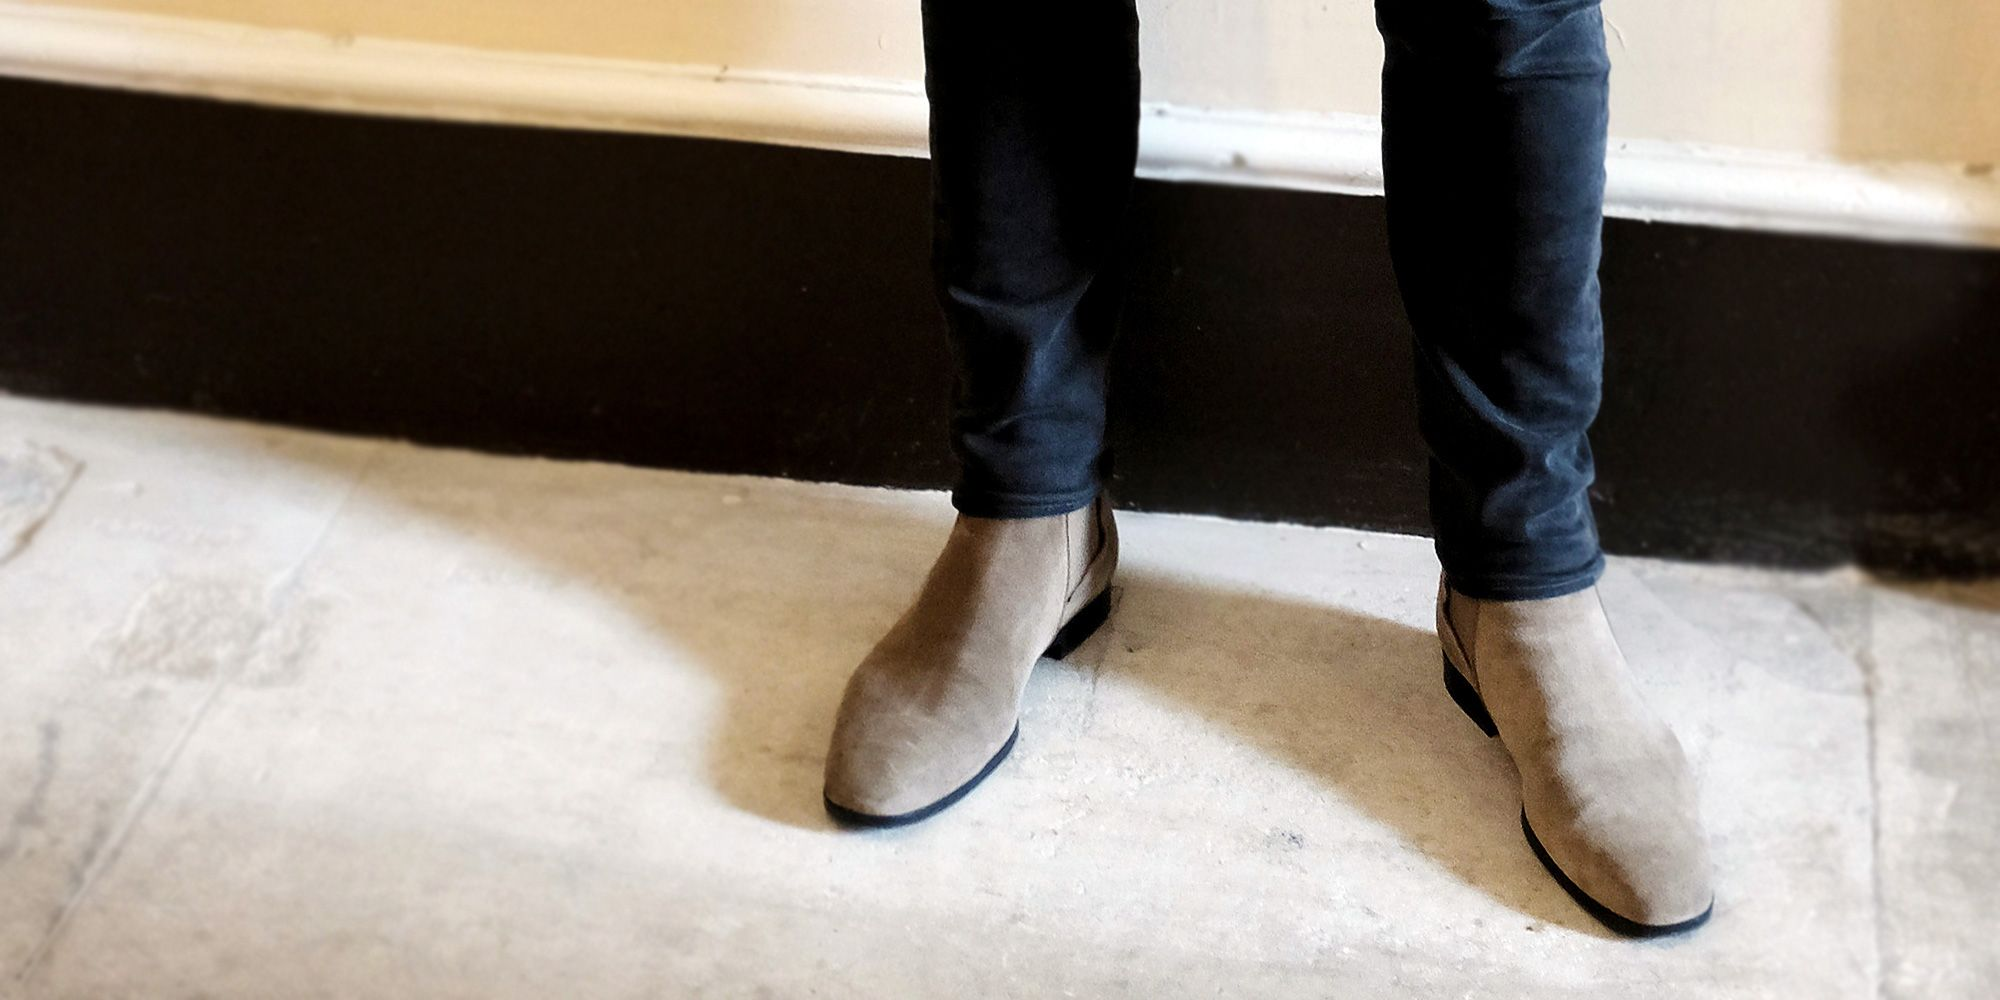 Get These Suede Boots Now and Wear Them All Year